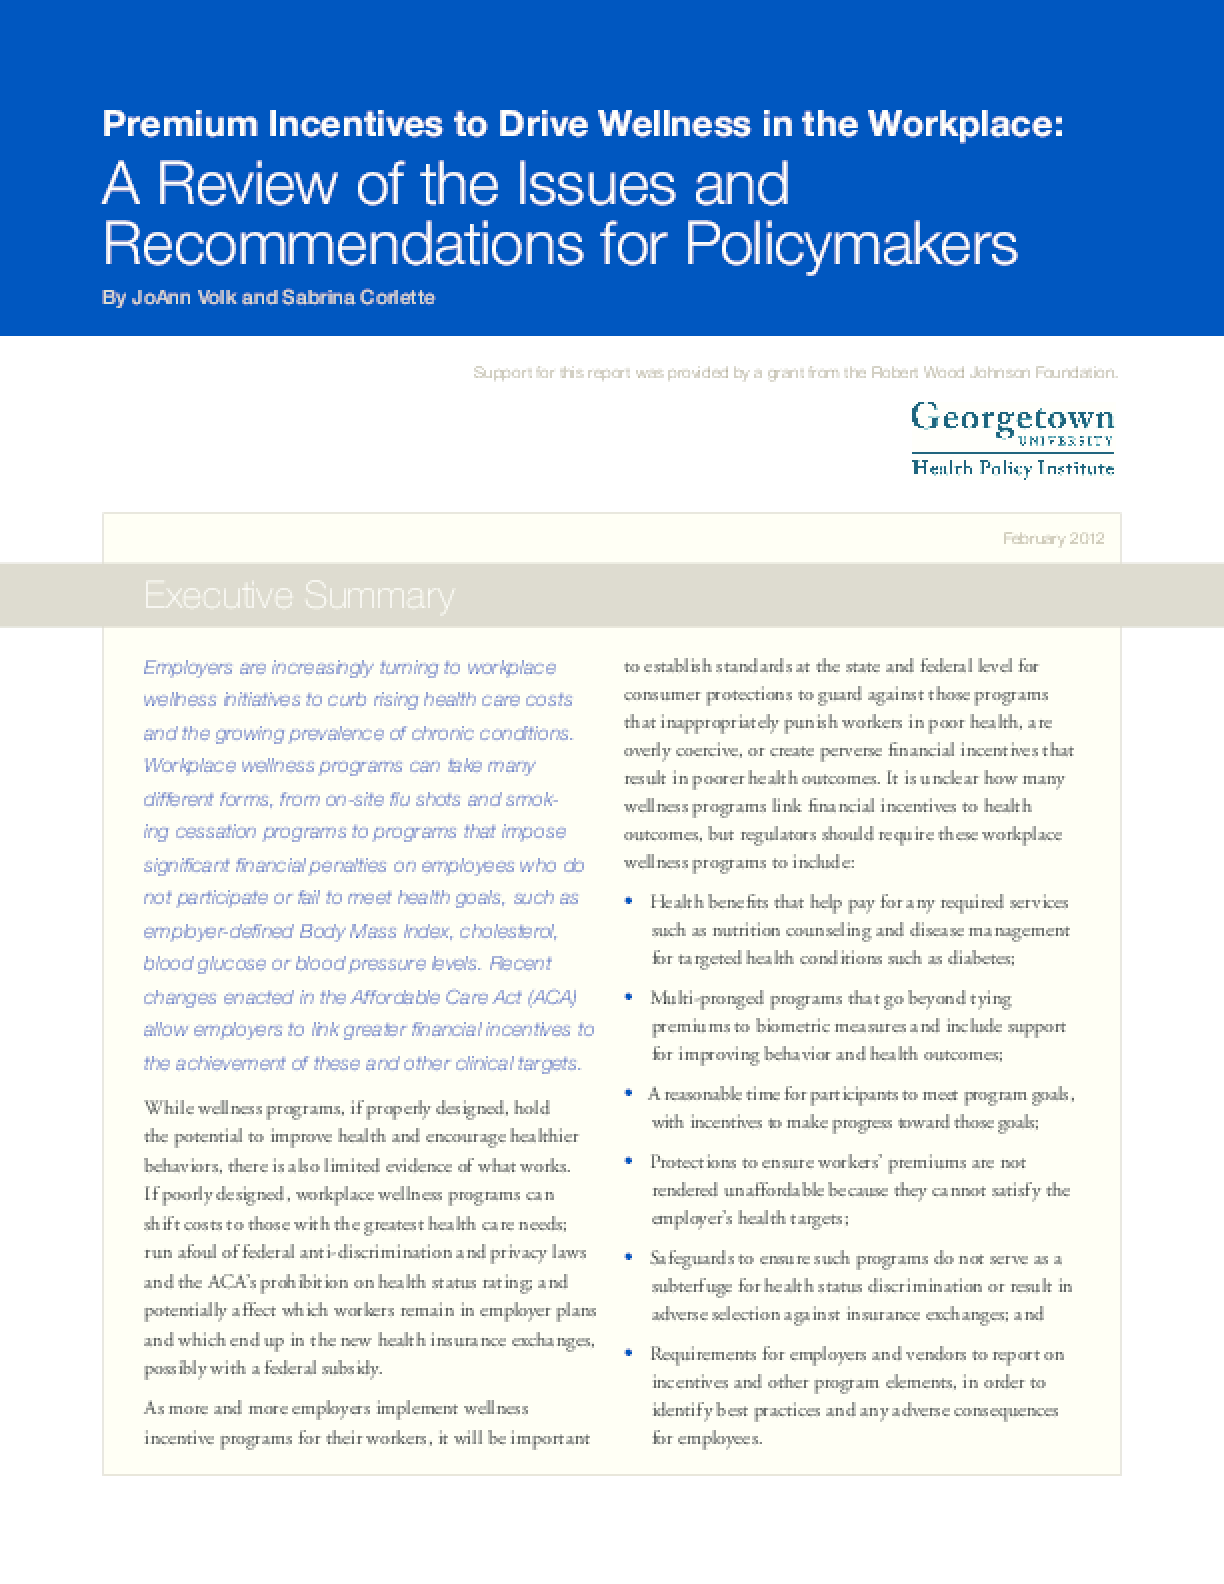 Premium Incentives to Drive Wellness in the Workplace: A Review of the Issues and Recommendations for Policymakers